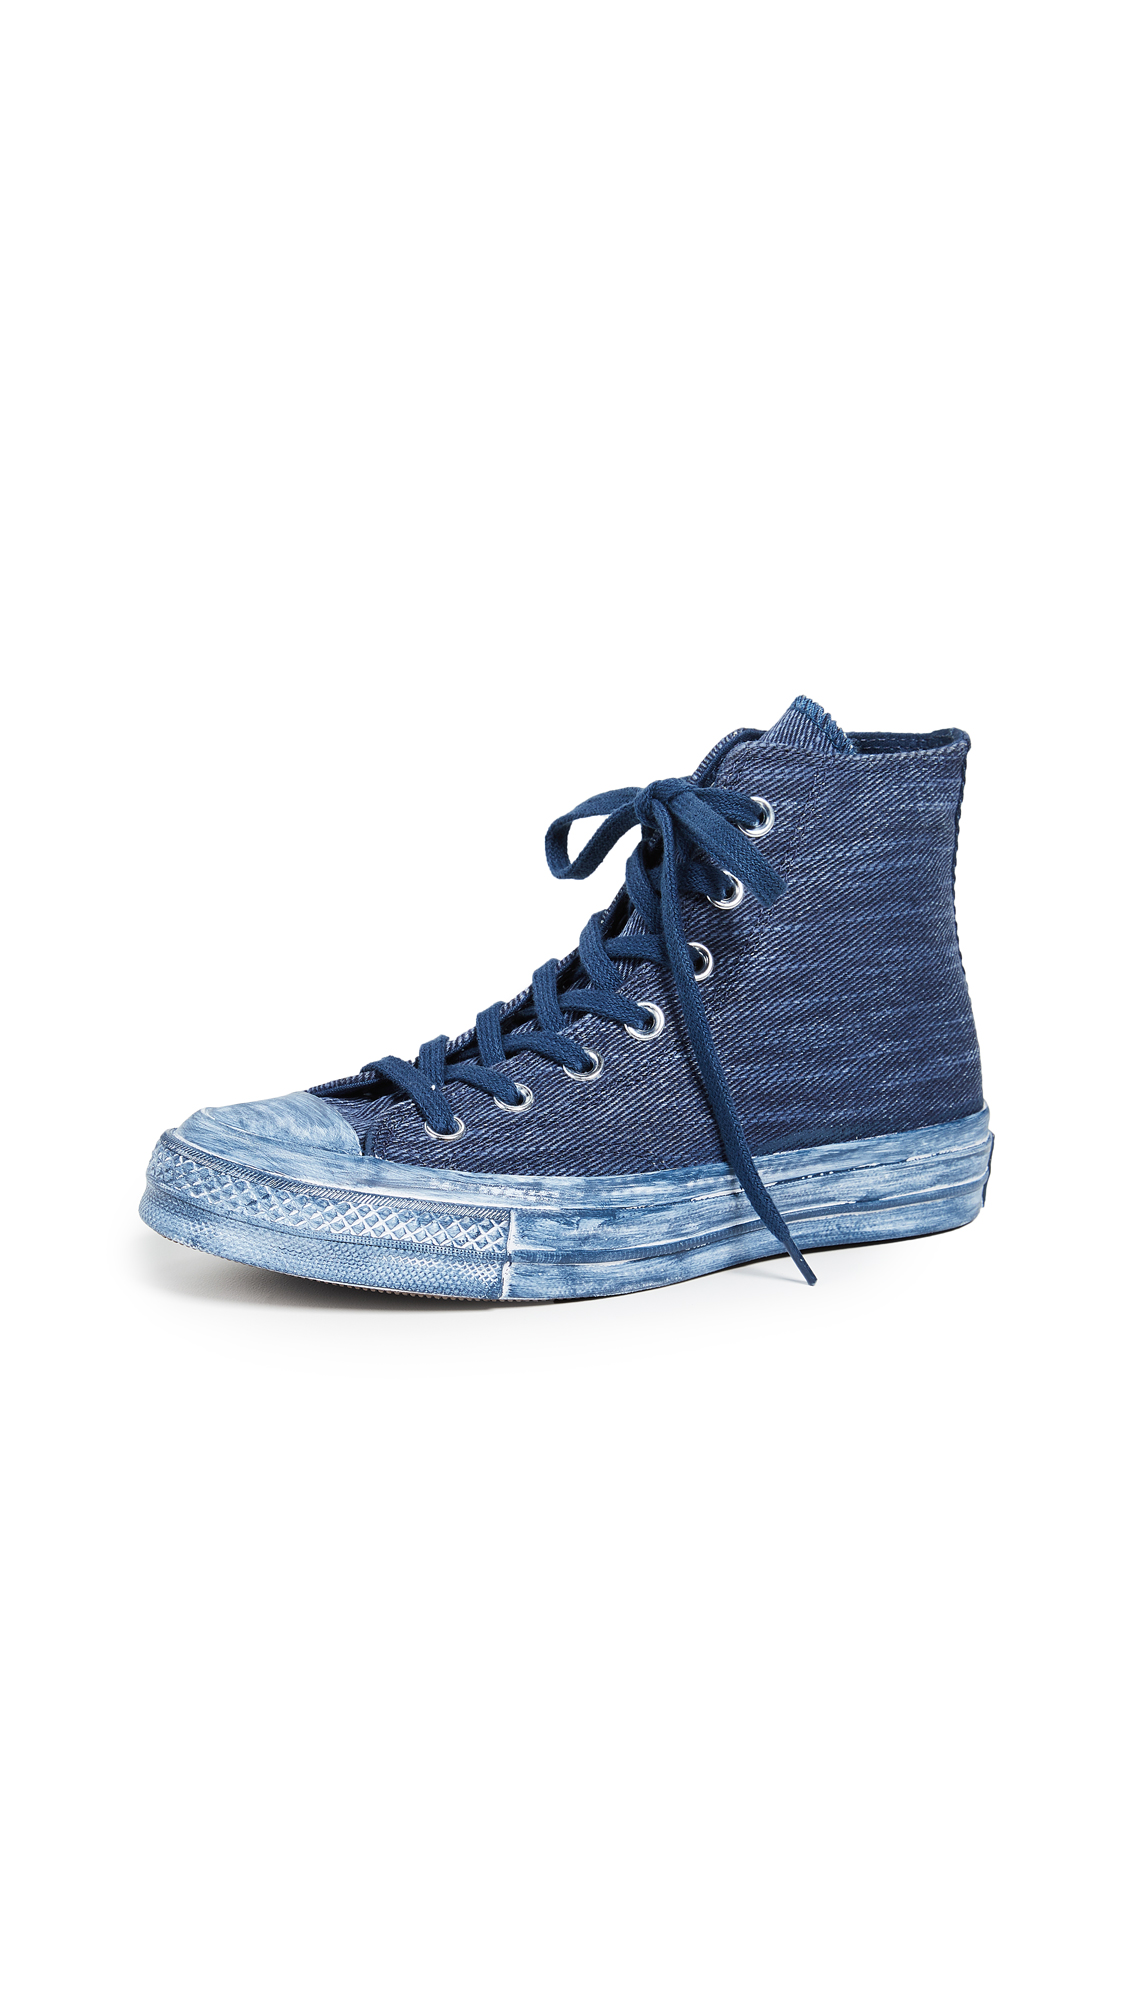 03a239c88e835d Converse Chuck Taylor All Star 70 High Top Sneakers In Navy ...